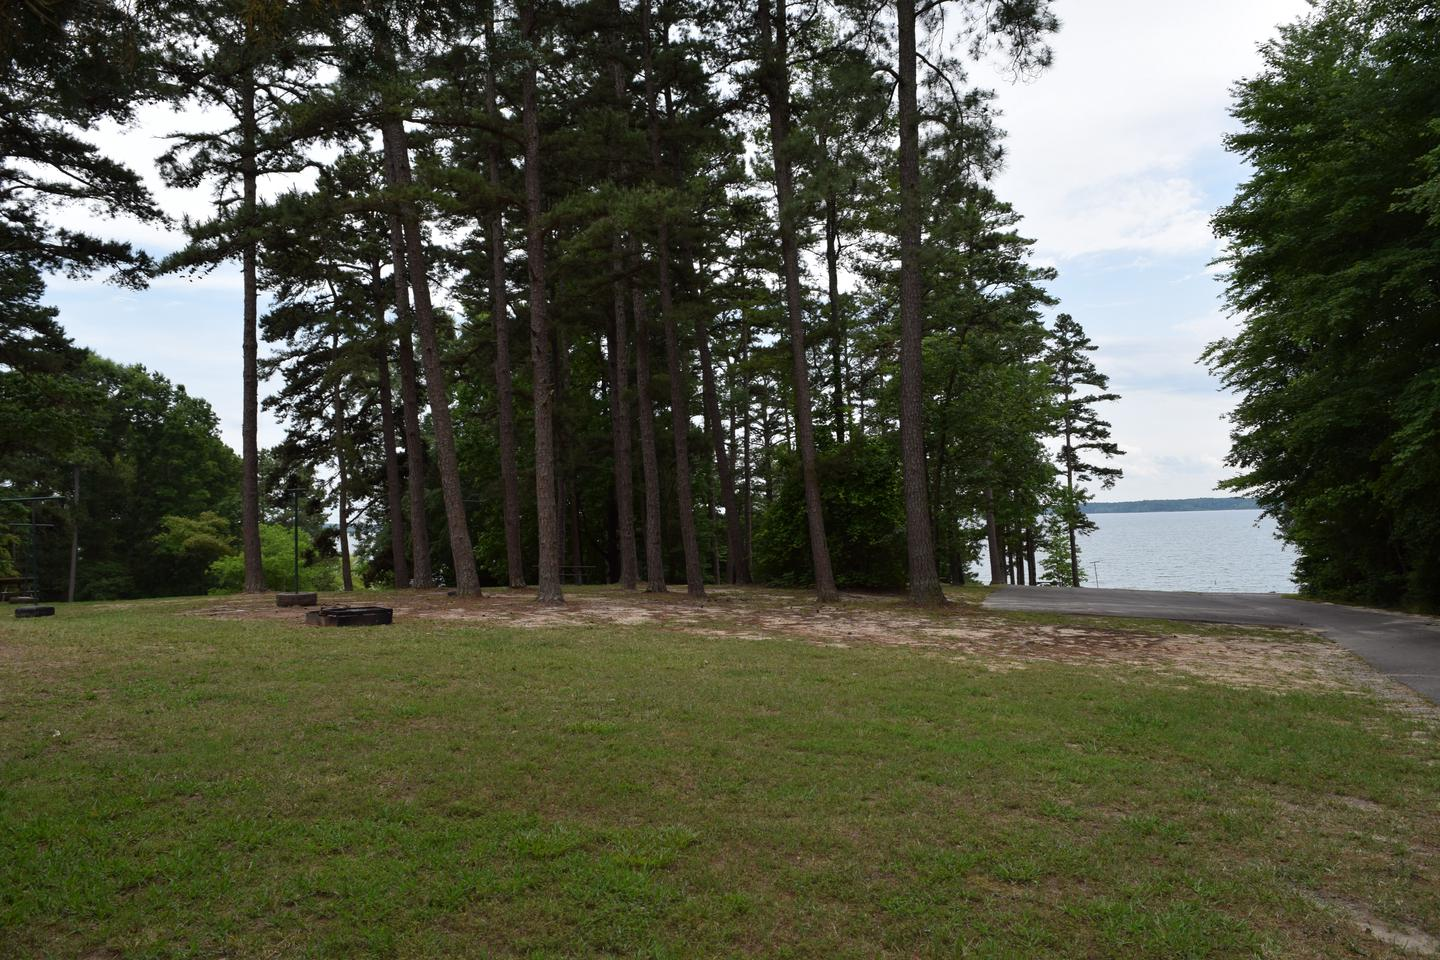 Mays Chapel Group AreaWelcome to Mays Chapel Group Camping Area! This is a picture of the grassy area located behind the shelter. This area has fire rings for you to use as well as lantern holders. There is a small paved parking area within the group camping area.